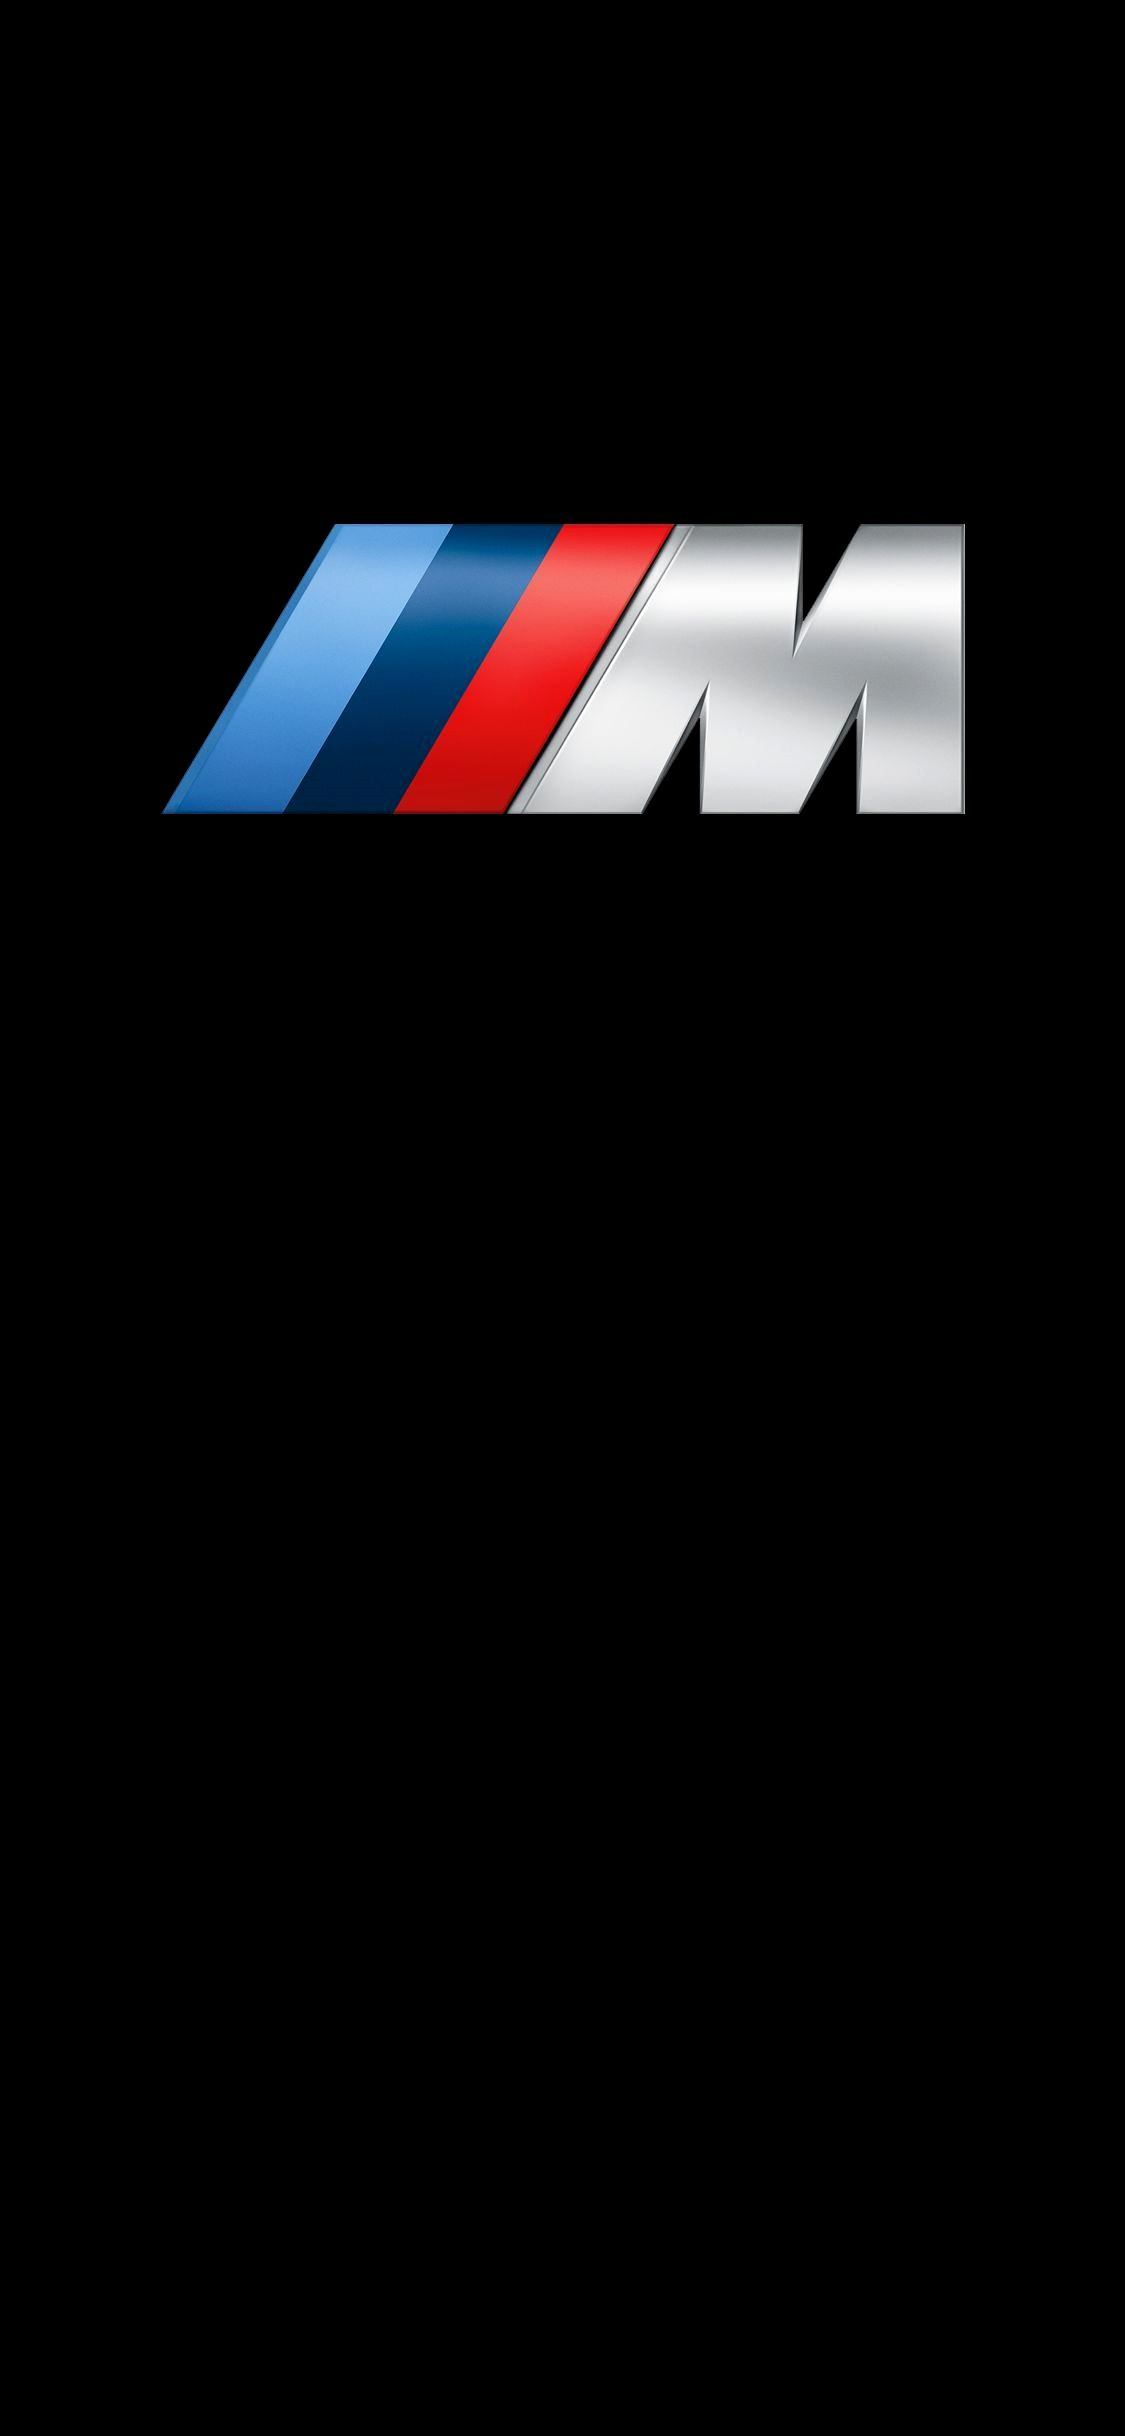 Pin By Nebihan Tasel On Bmw Bmw Wallpapers Bmw Bmw Cars